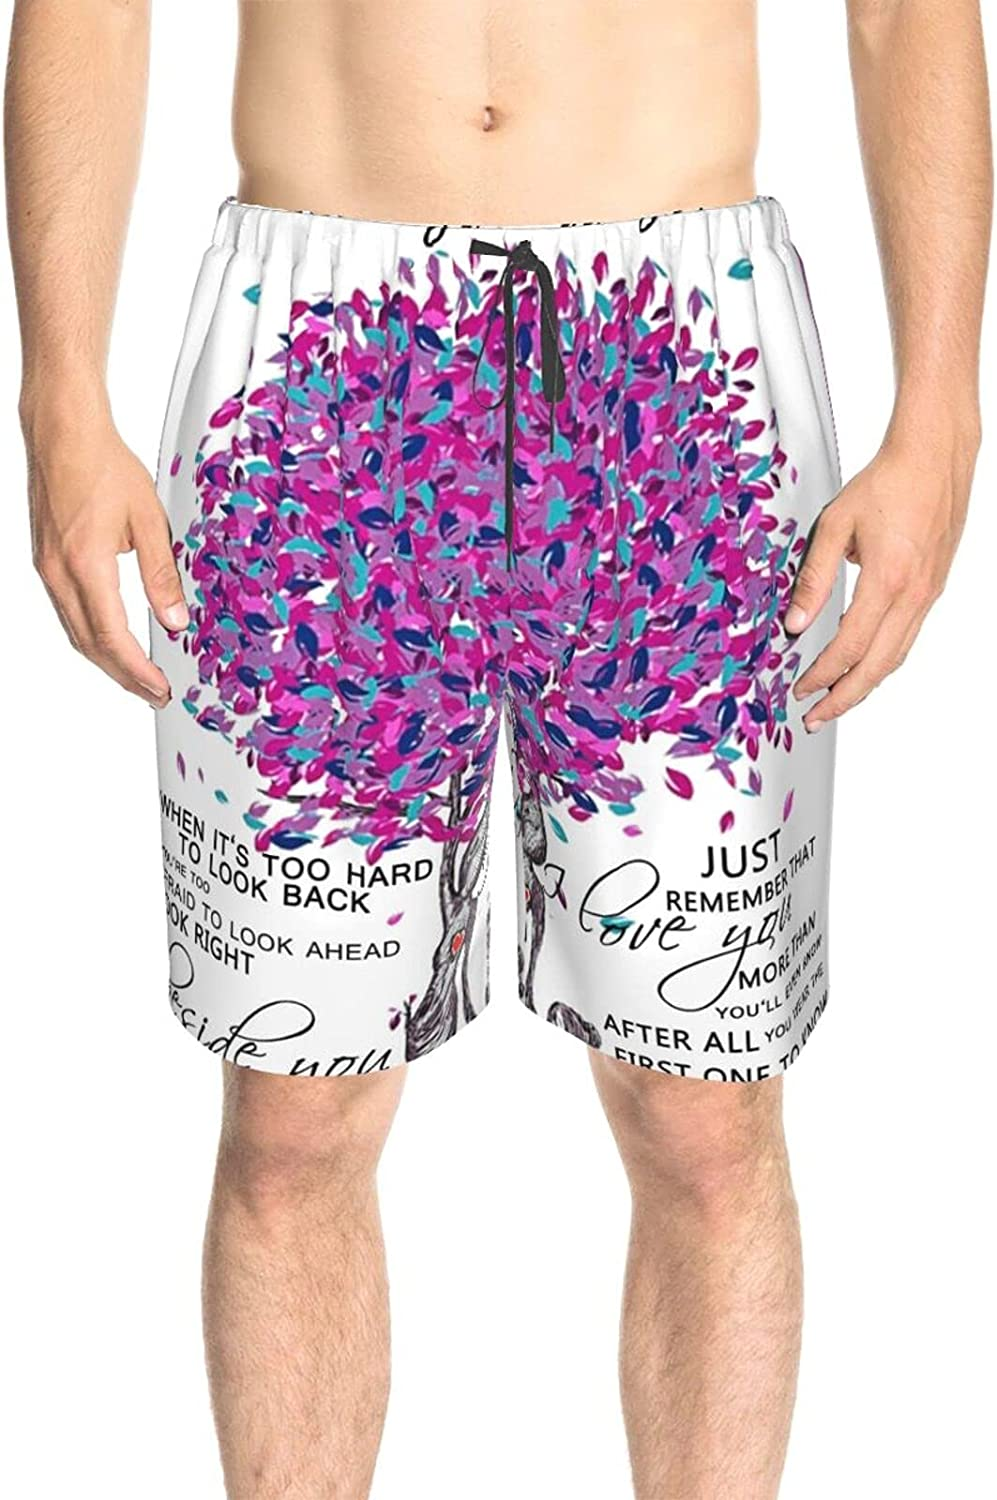 Men's Swim Trunks Always with My Daughter Purple Tree Beach Board Shorts Quick Dry Cool Surf Beach Shorts with Pockets